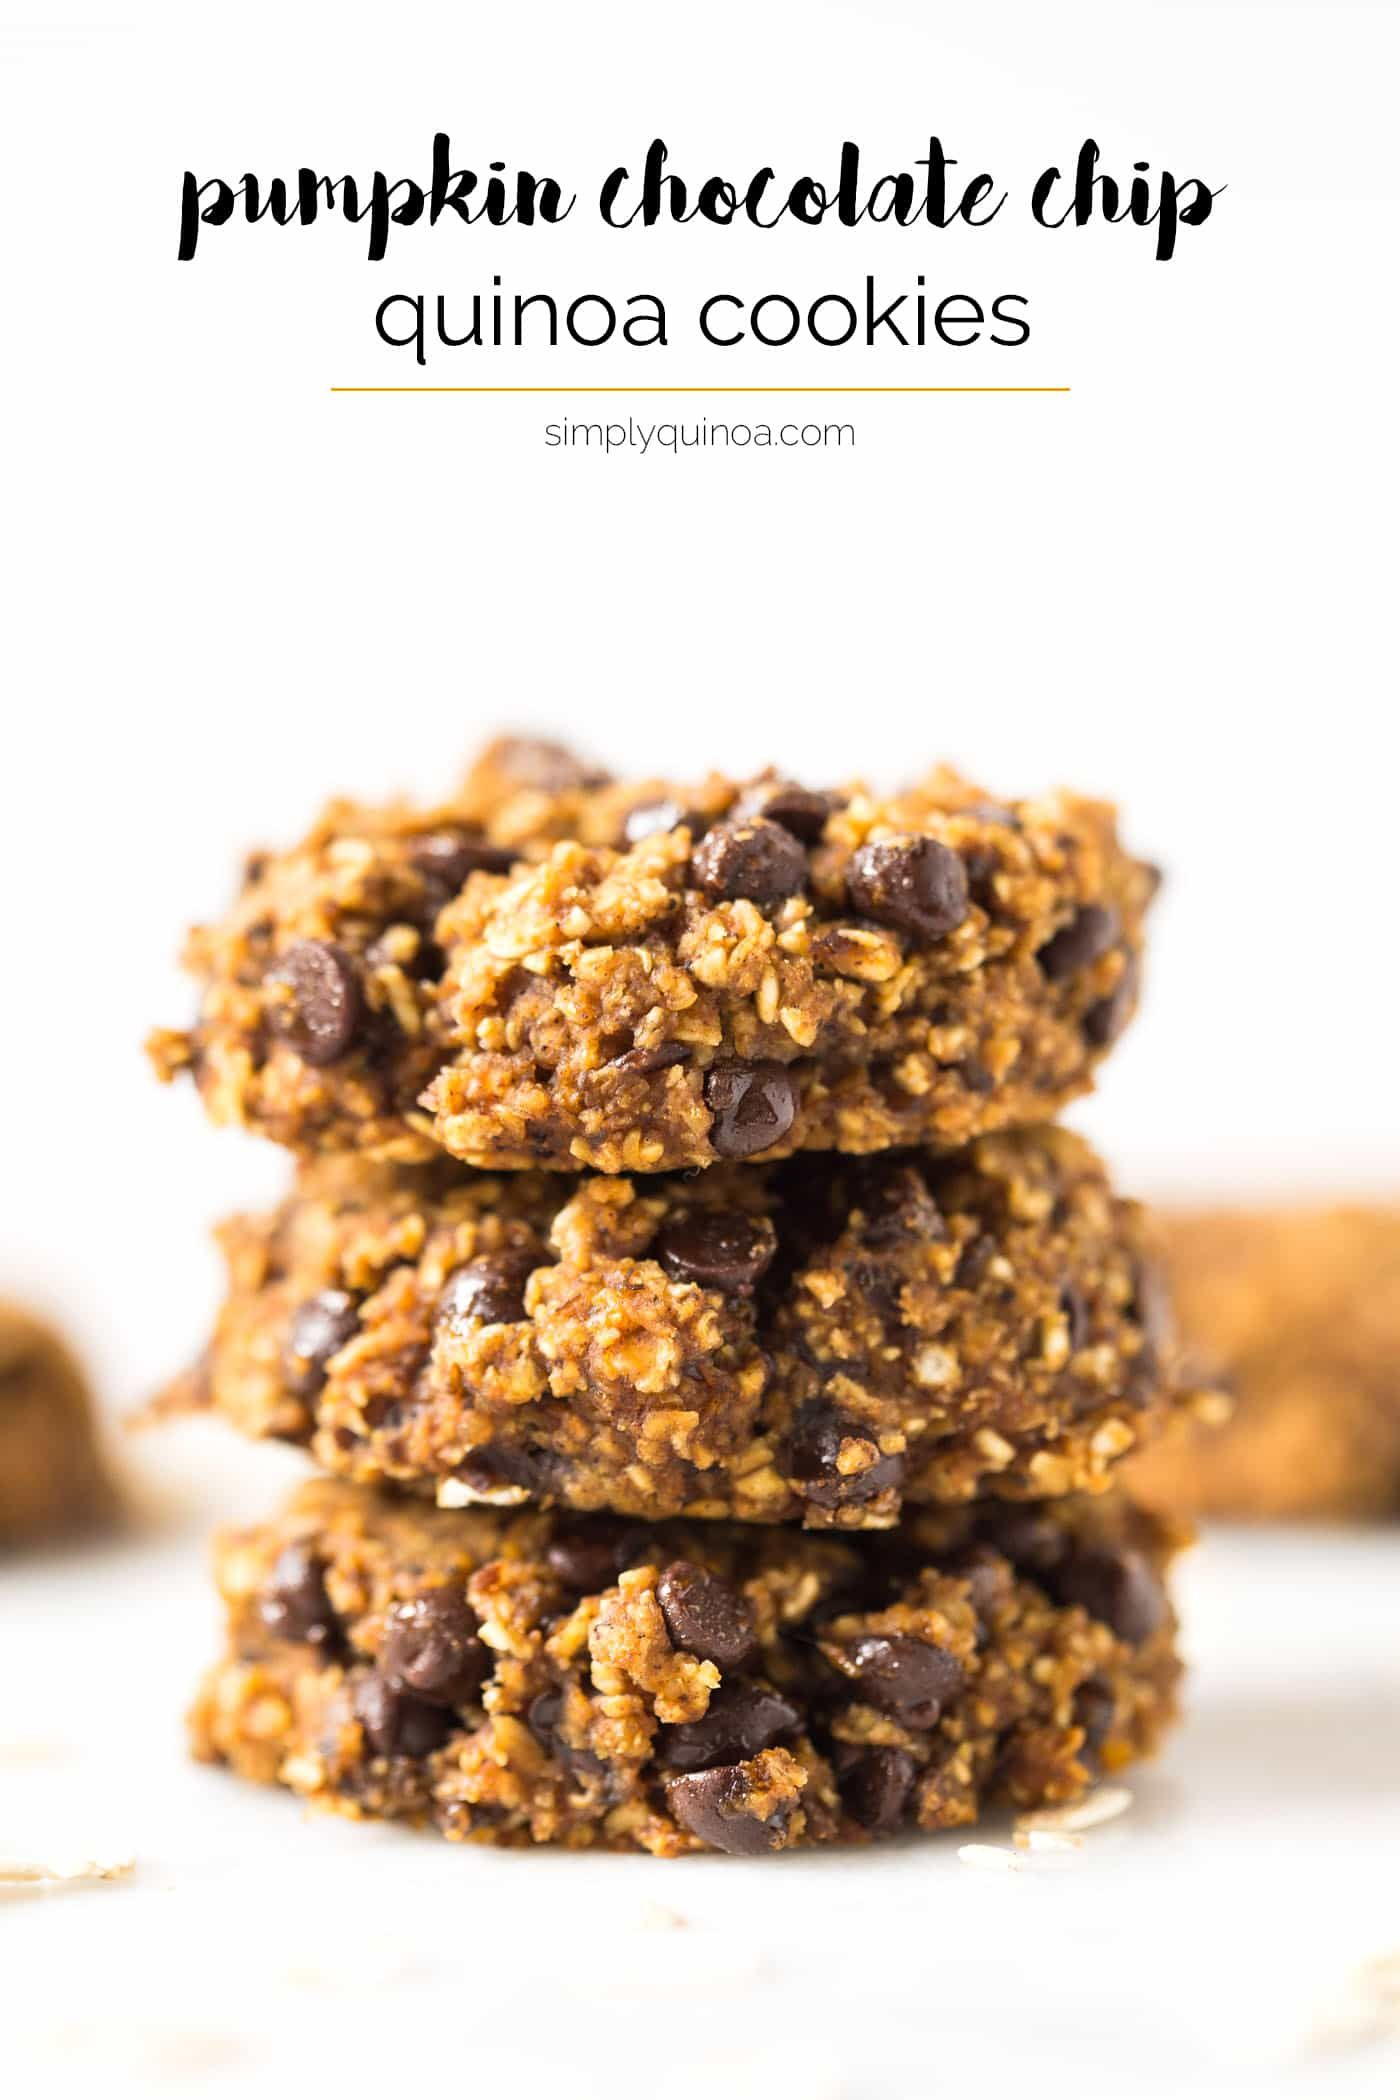 Pumpkin Chocolate Chip Quinoa Cookies - Simply Quinoa